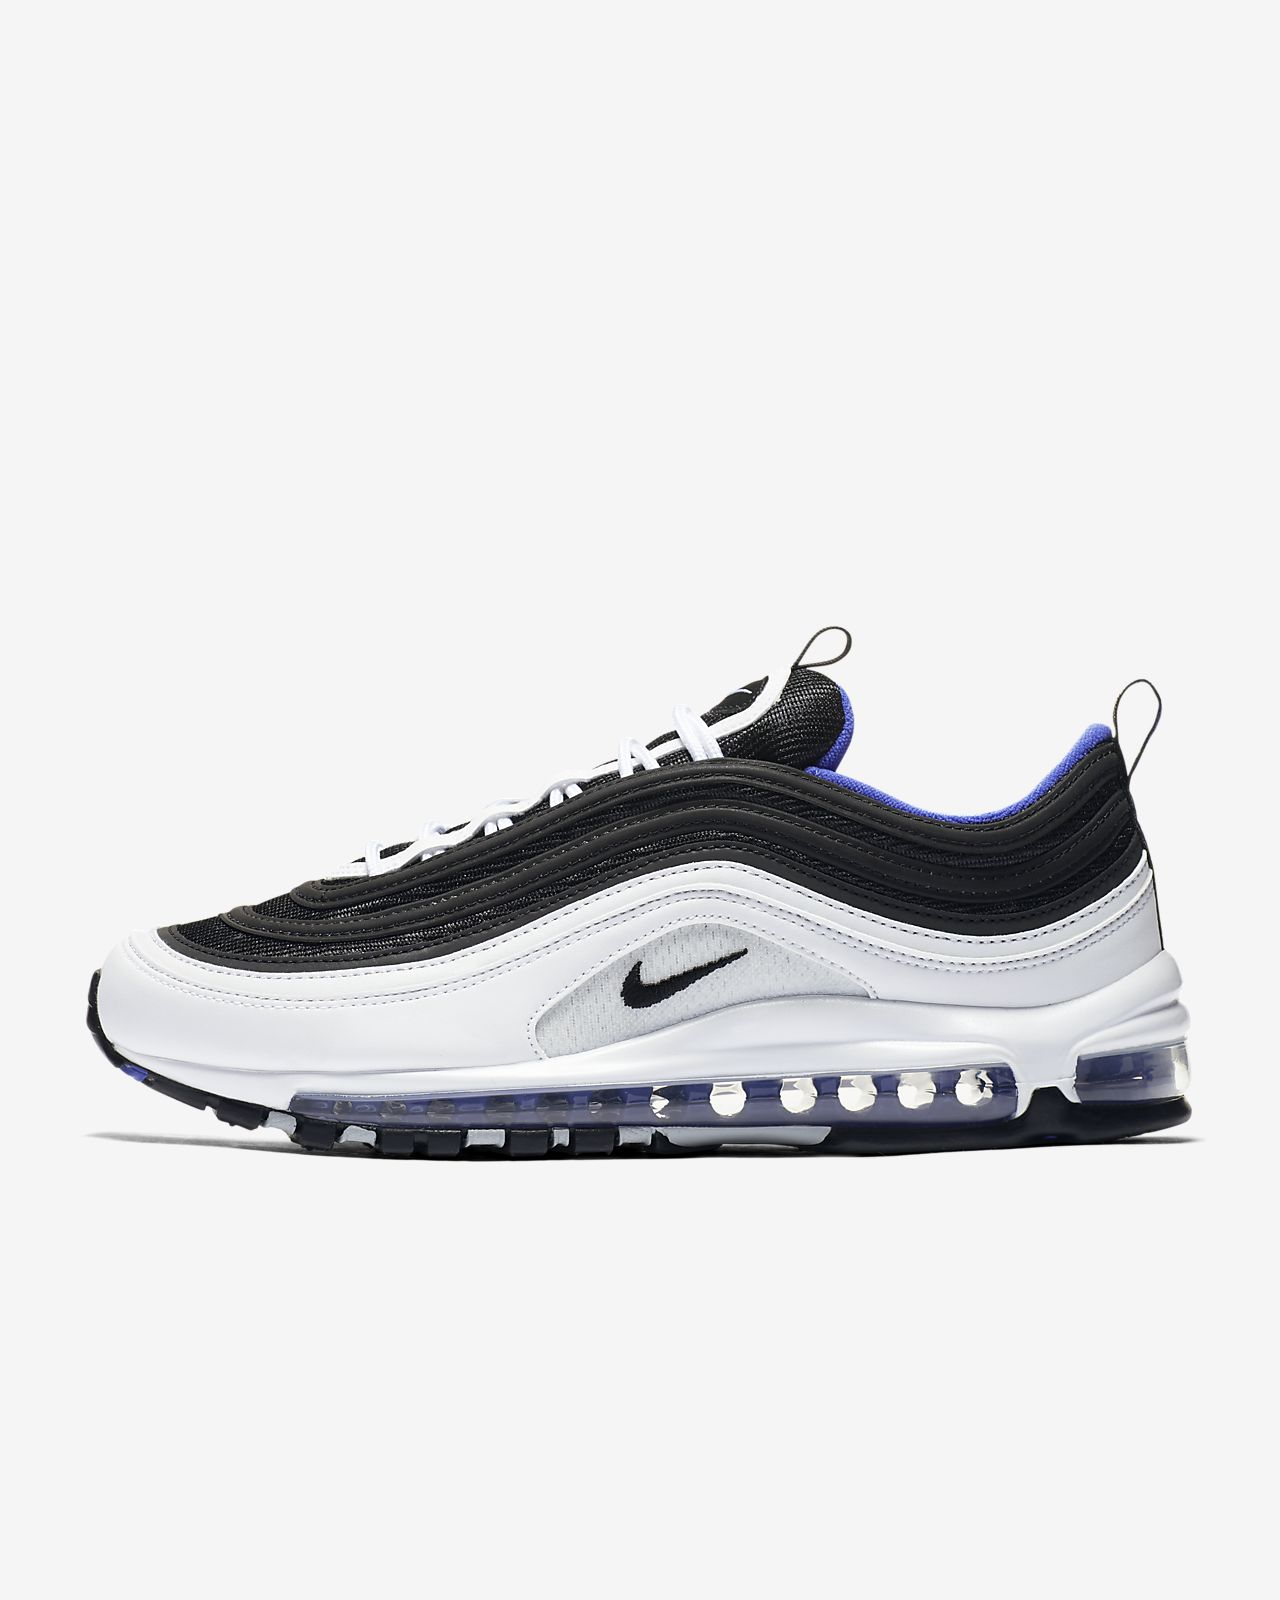 Nike Air Max 97 Mens Shoe